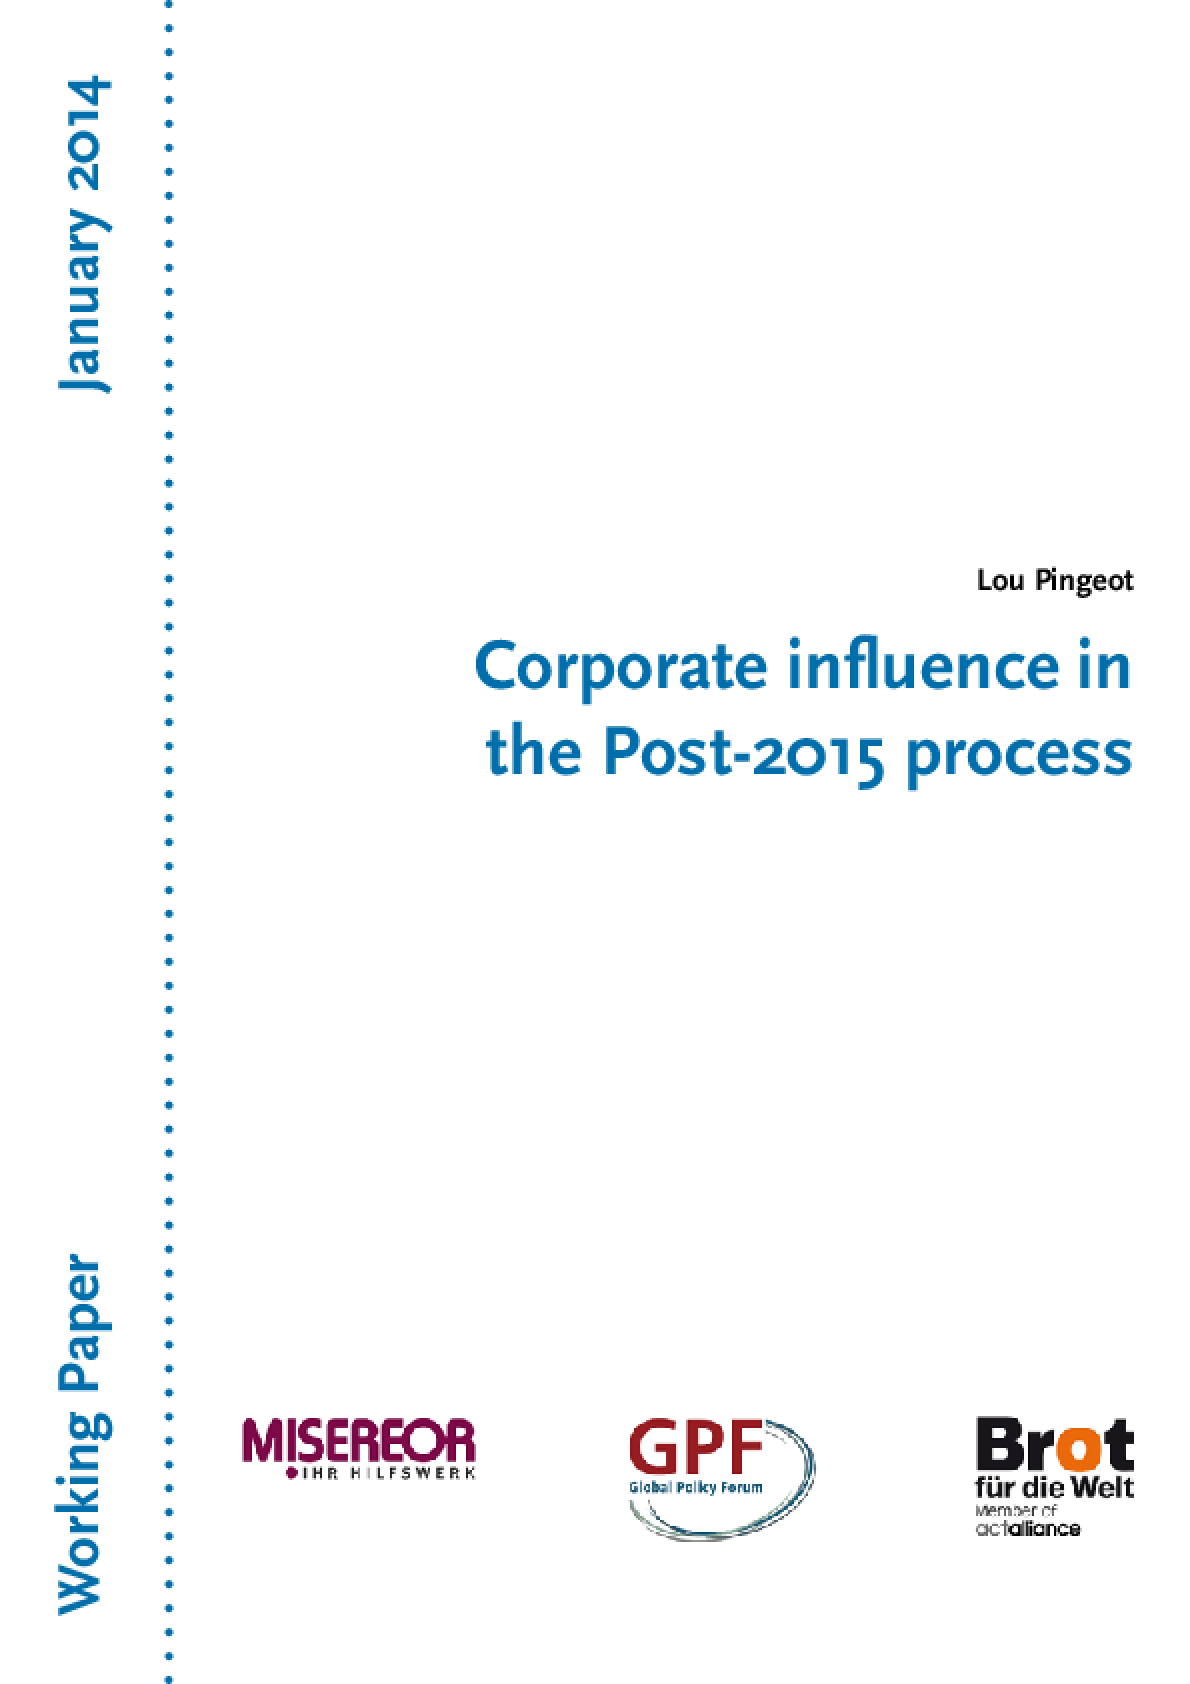 Corporate Influence in the Post-2015 Process